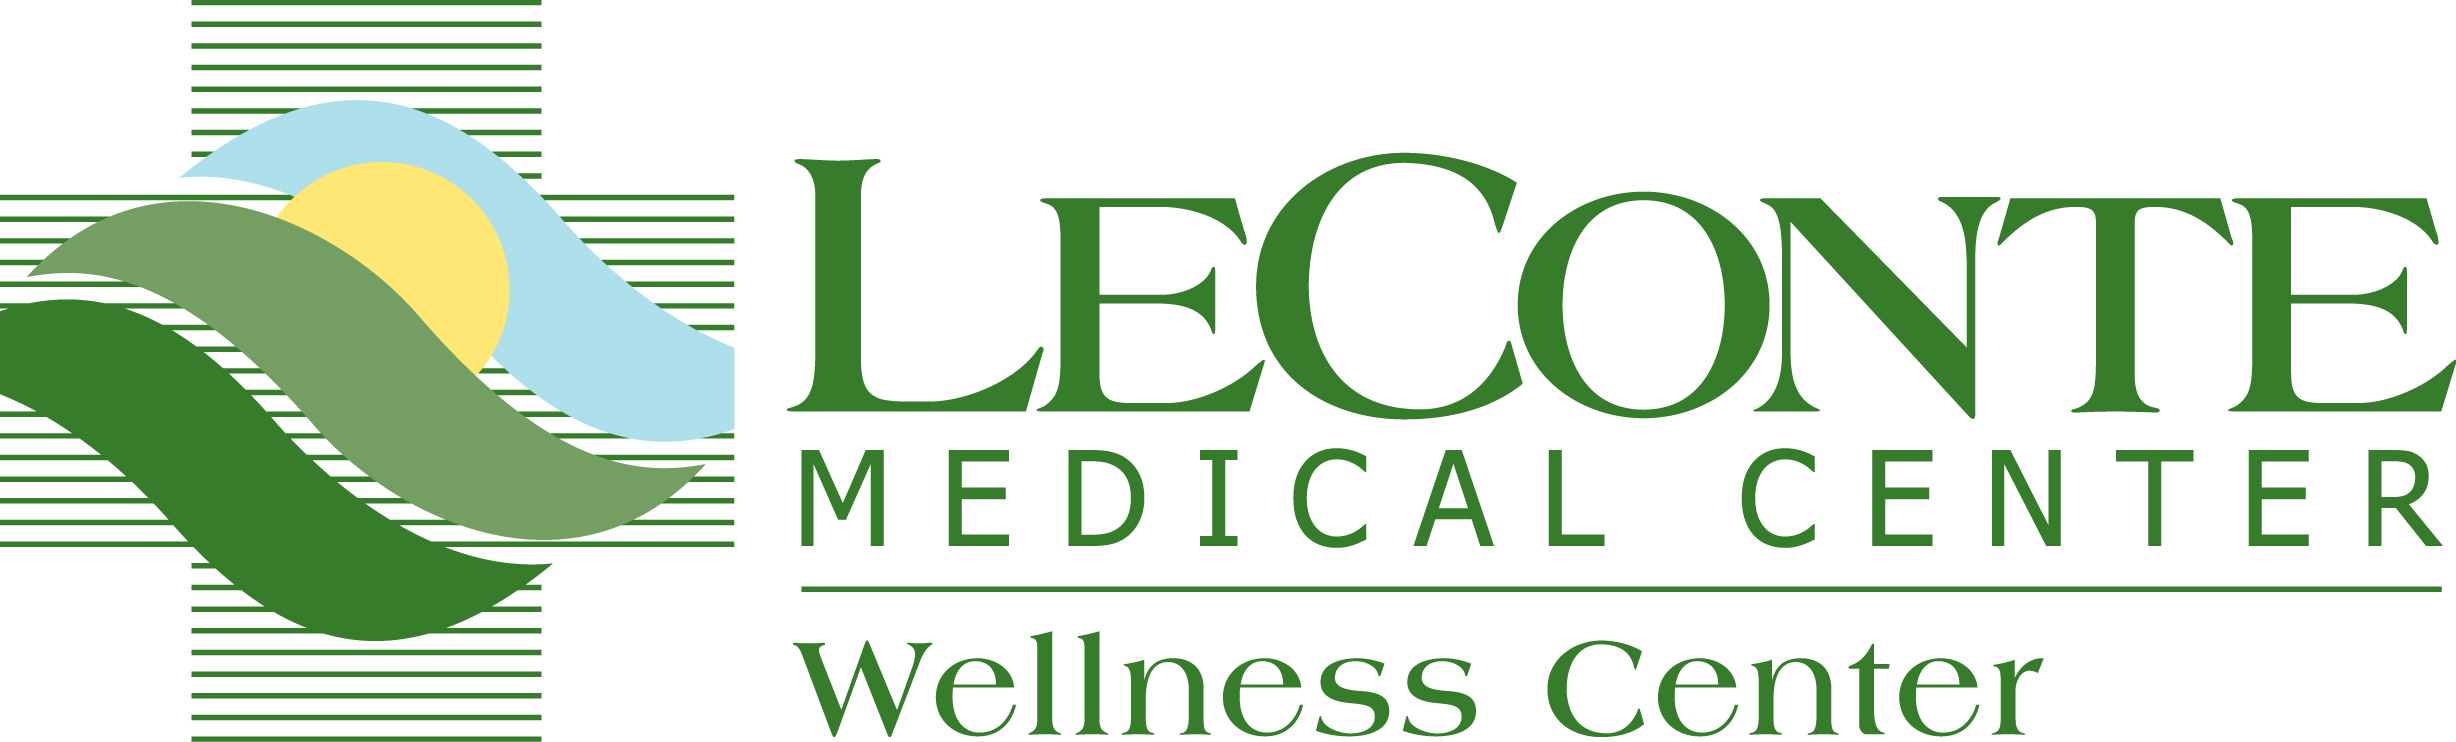 LeConte Wellness Center logo